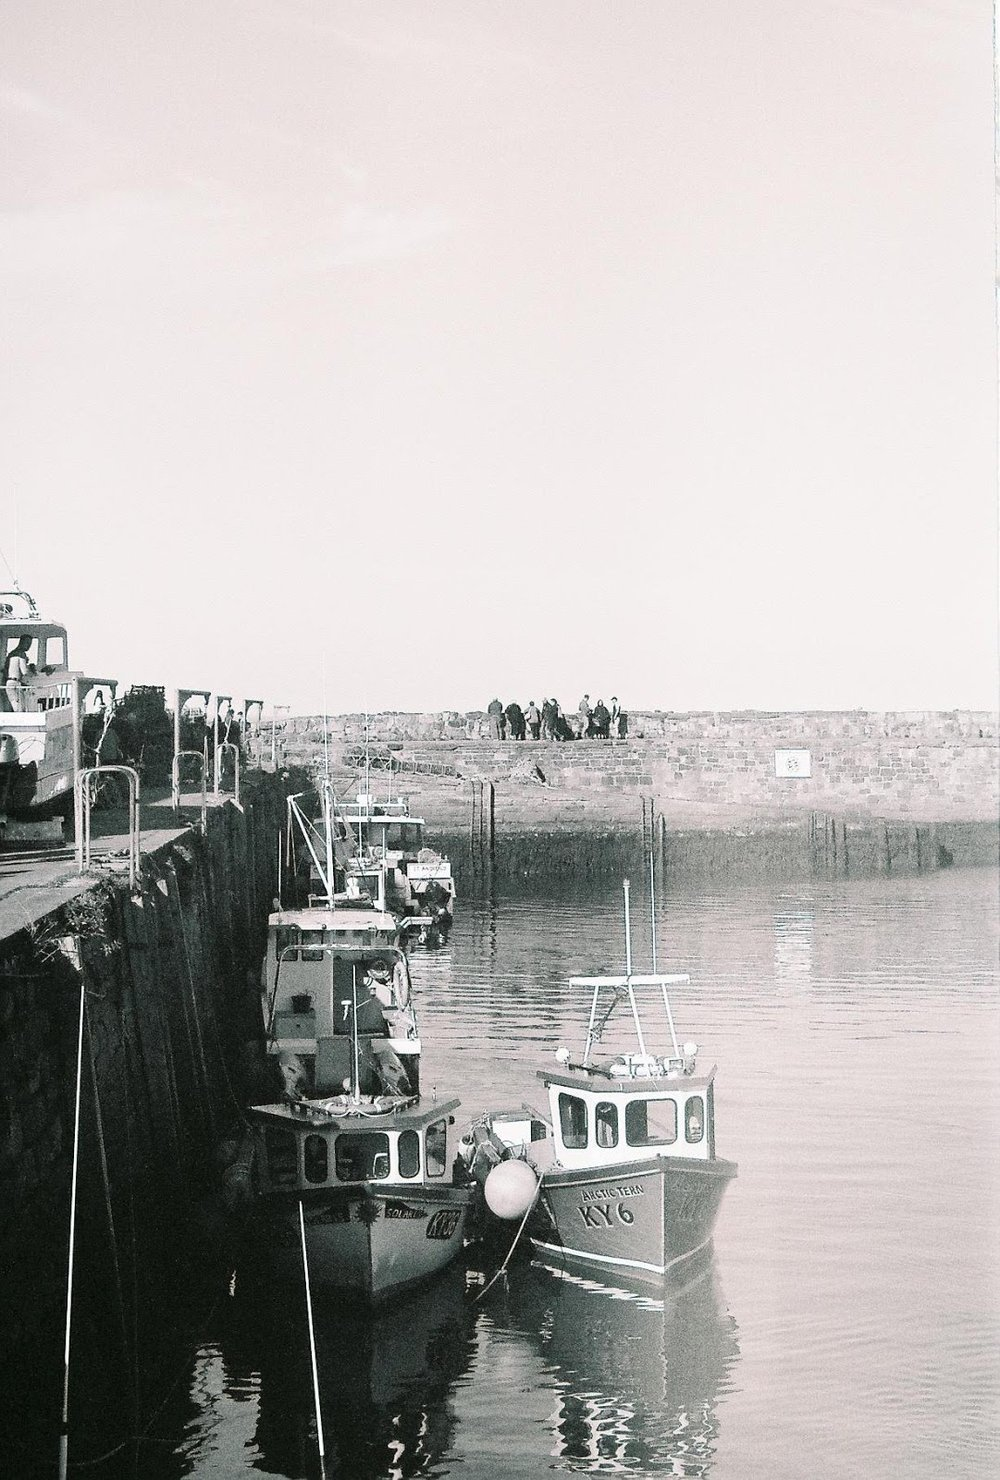 St Andrews harbour, April 2017